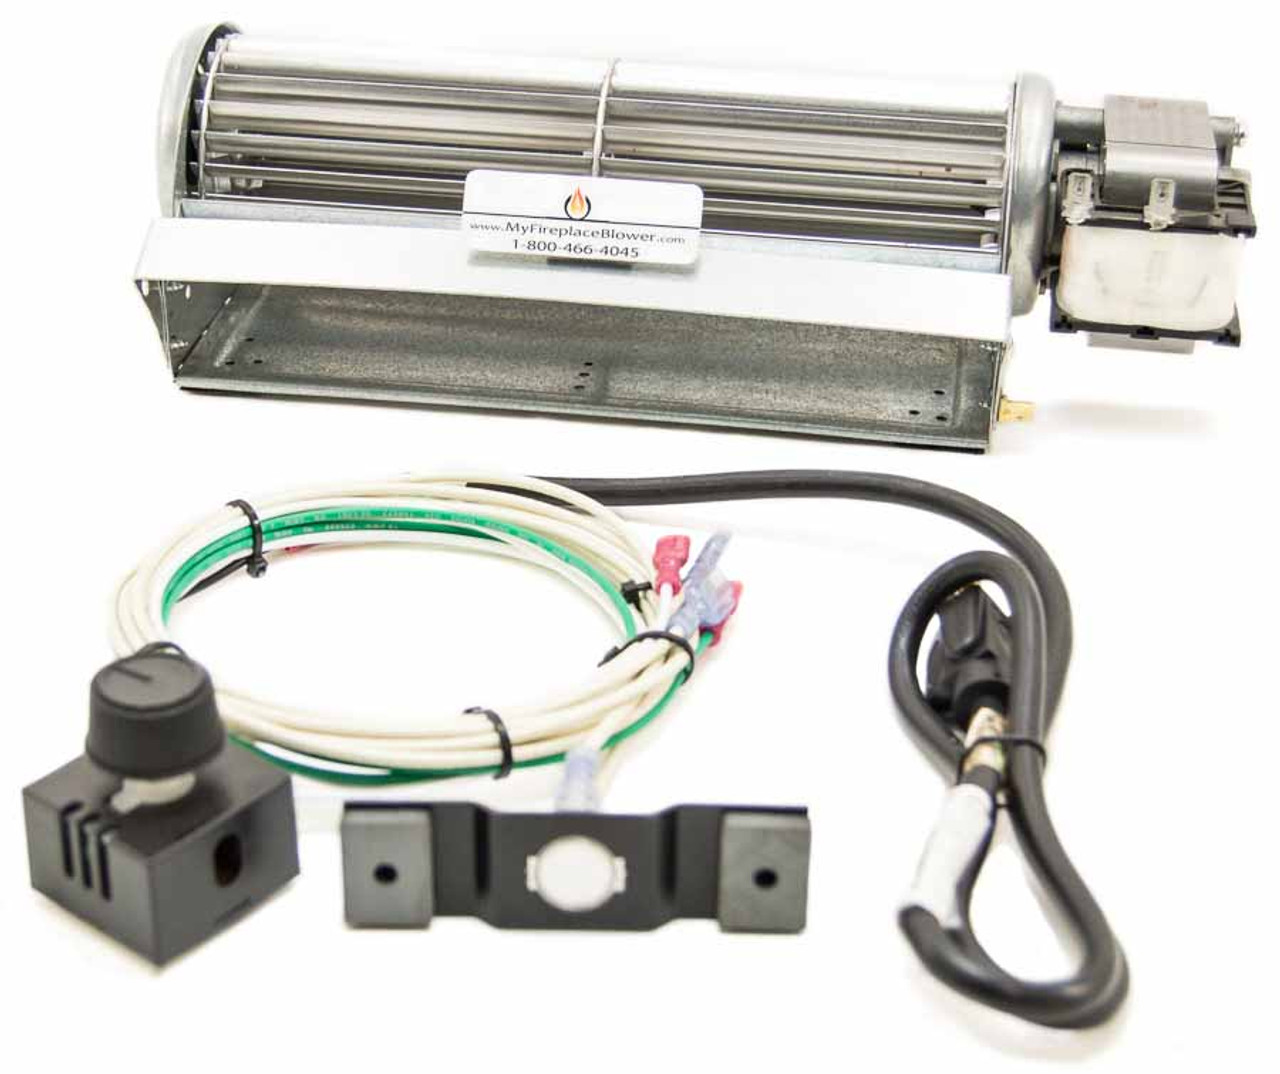 small resolution of blot240 fireplace blower fan kit for monessen fireplaces